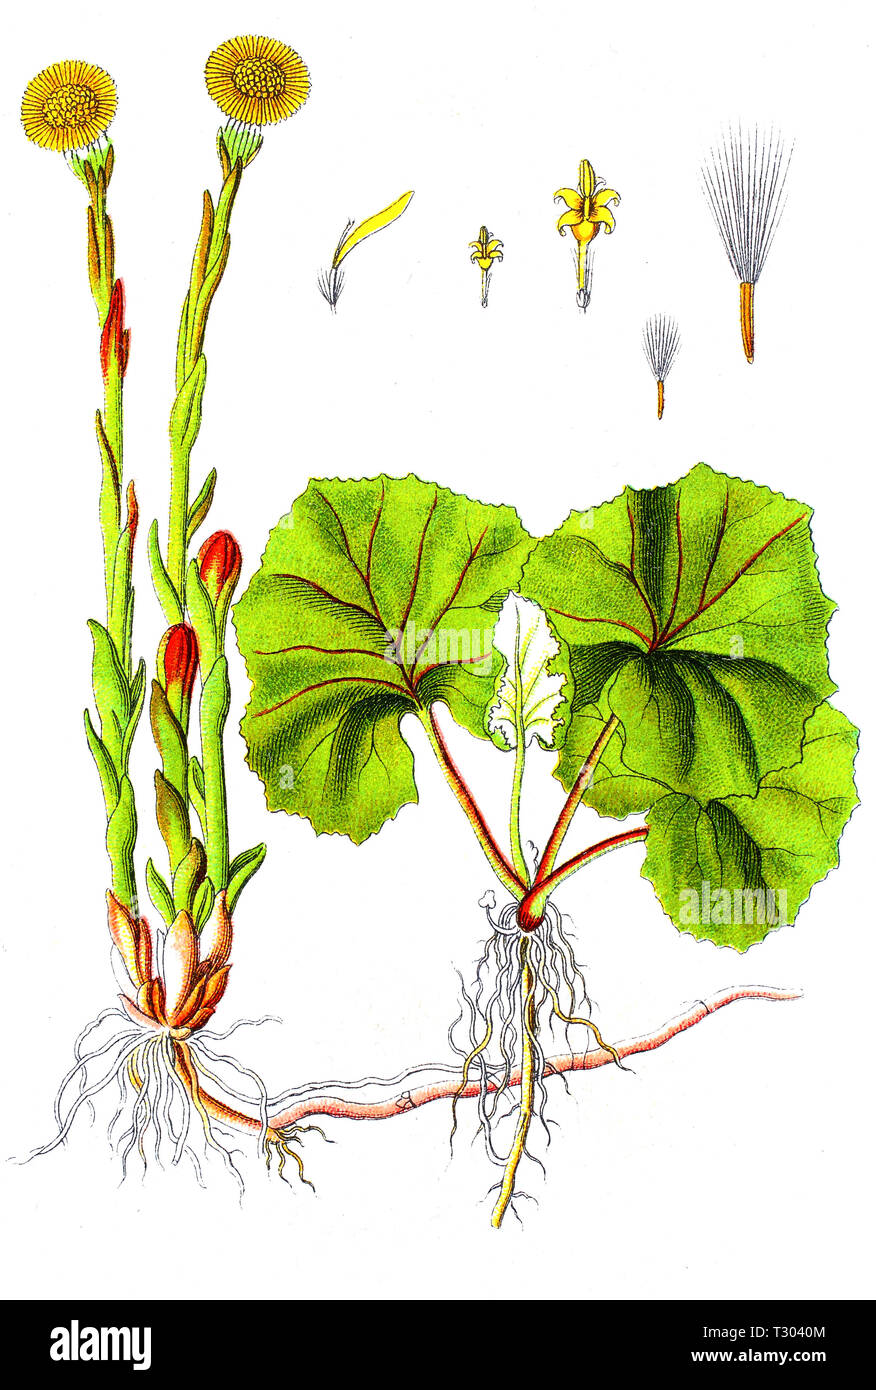 Digital improved reproduction of an illustration of, Huflattich, Tussilago farfara, coltsfoot, from an original print of the 19th century - Stock Image